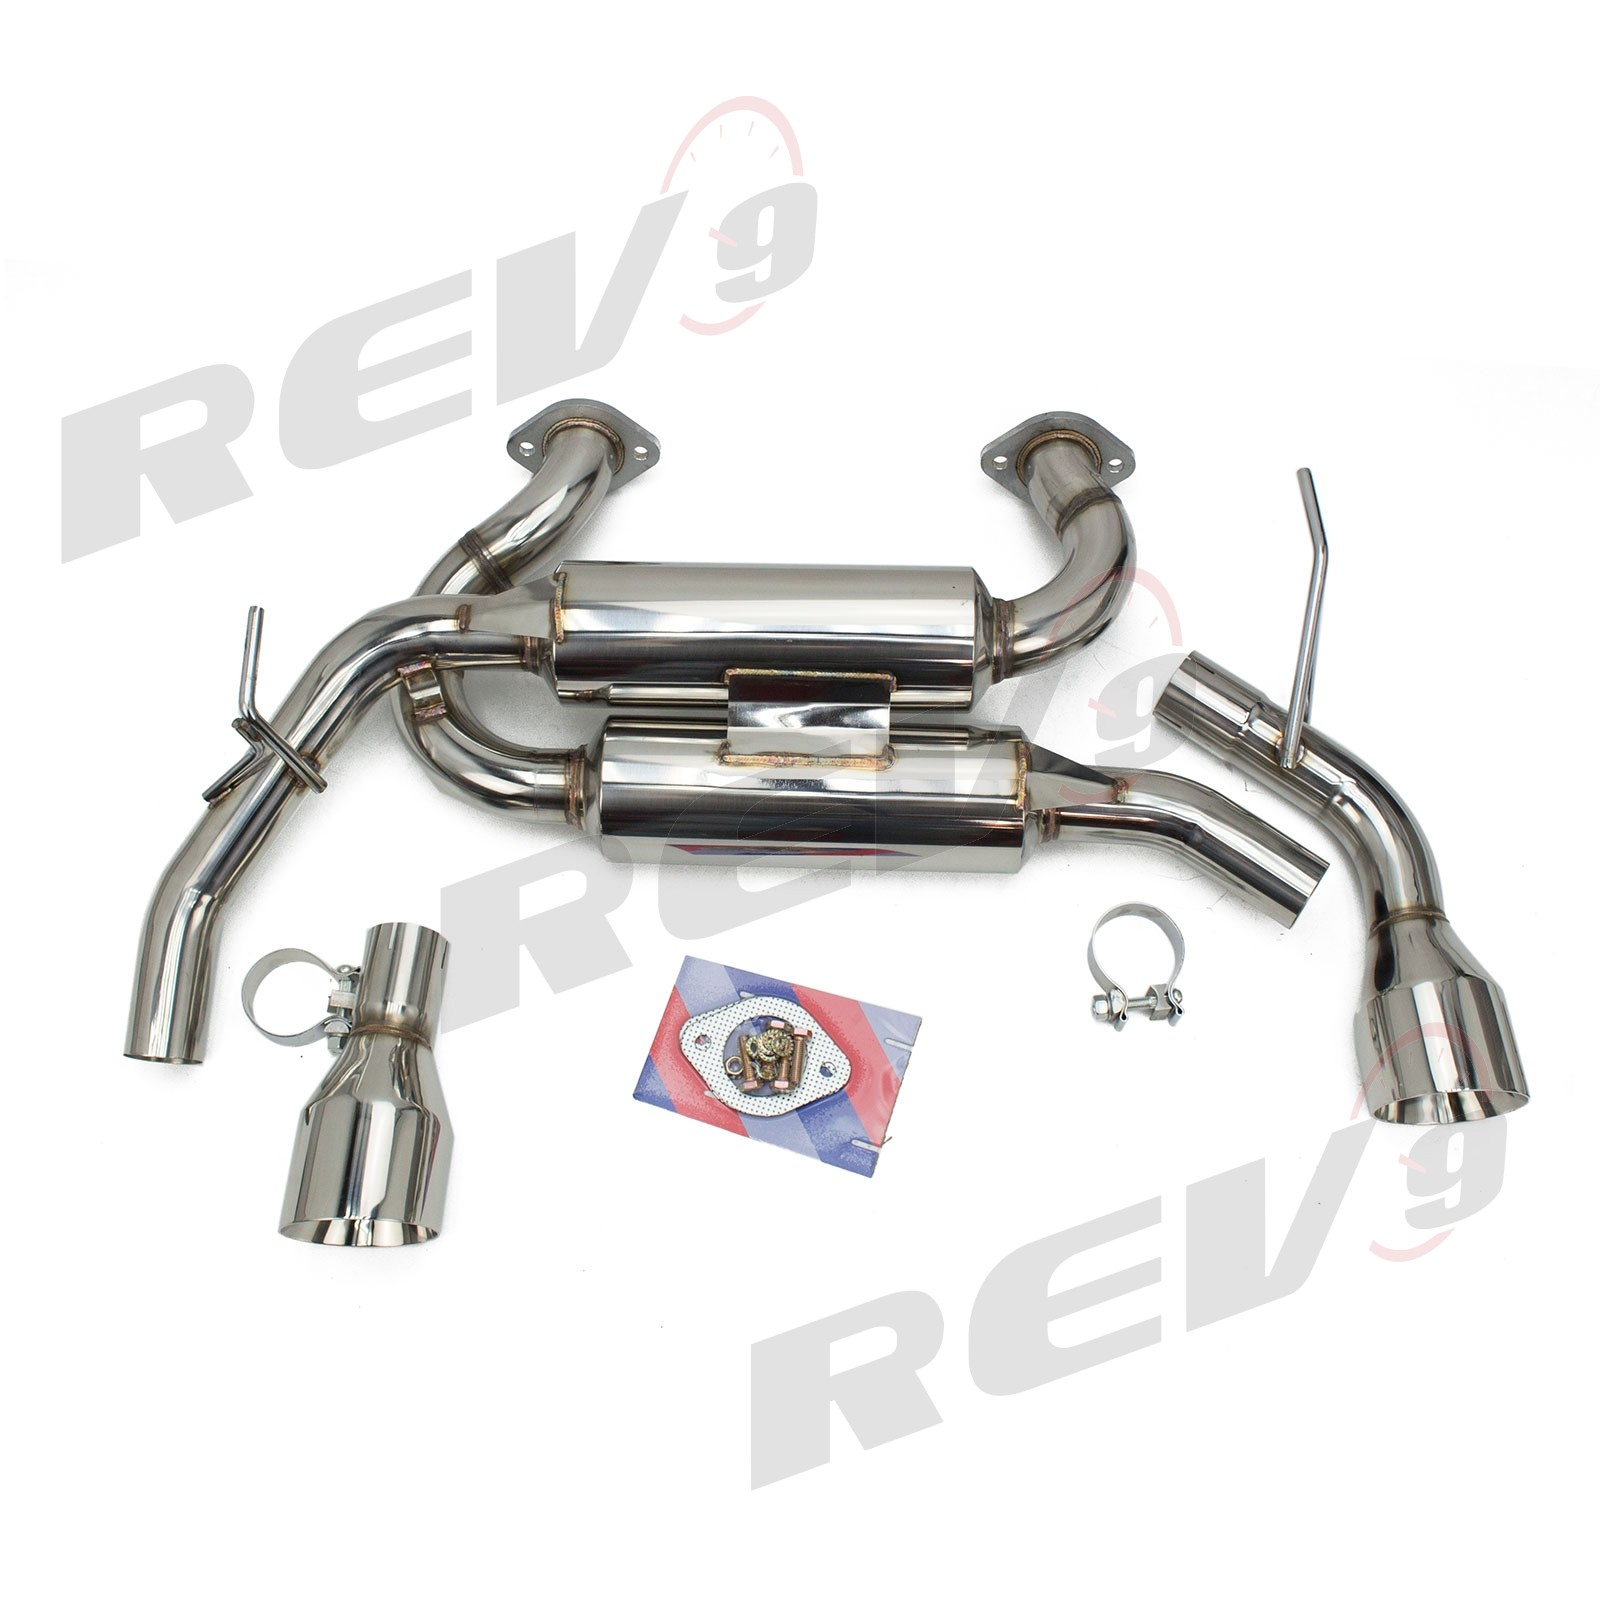 Rev9 FlowMaxx Stainless Axle-Back Exhaust 60mm Pipe